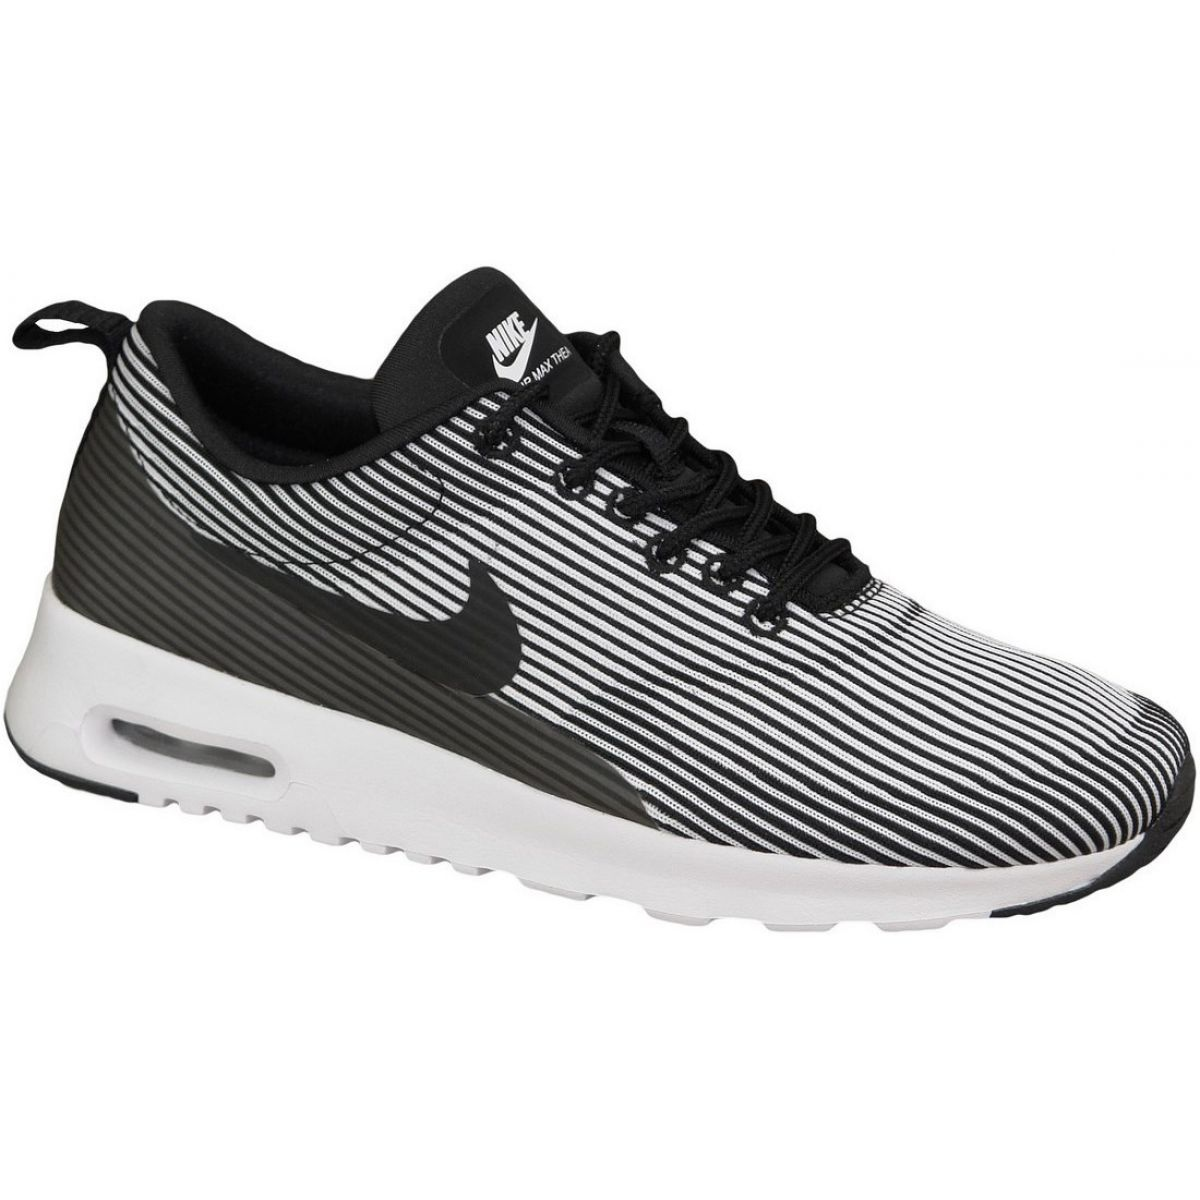 Details about Nike Air Max Shoes Thea Jacquard W 718646 003